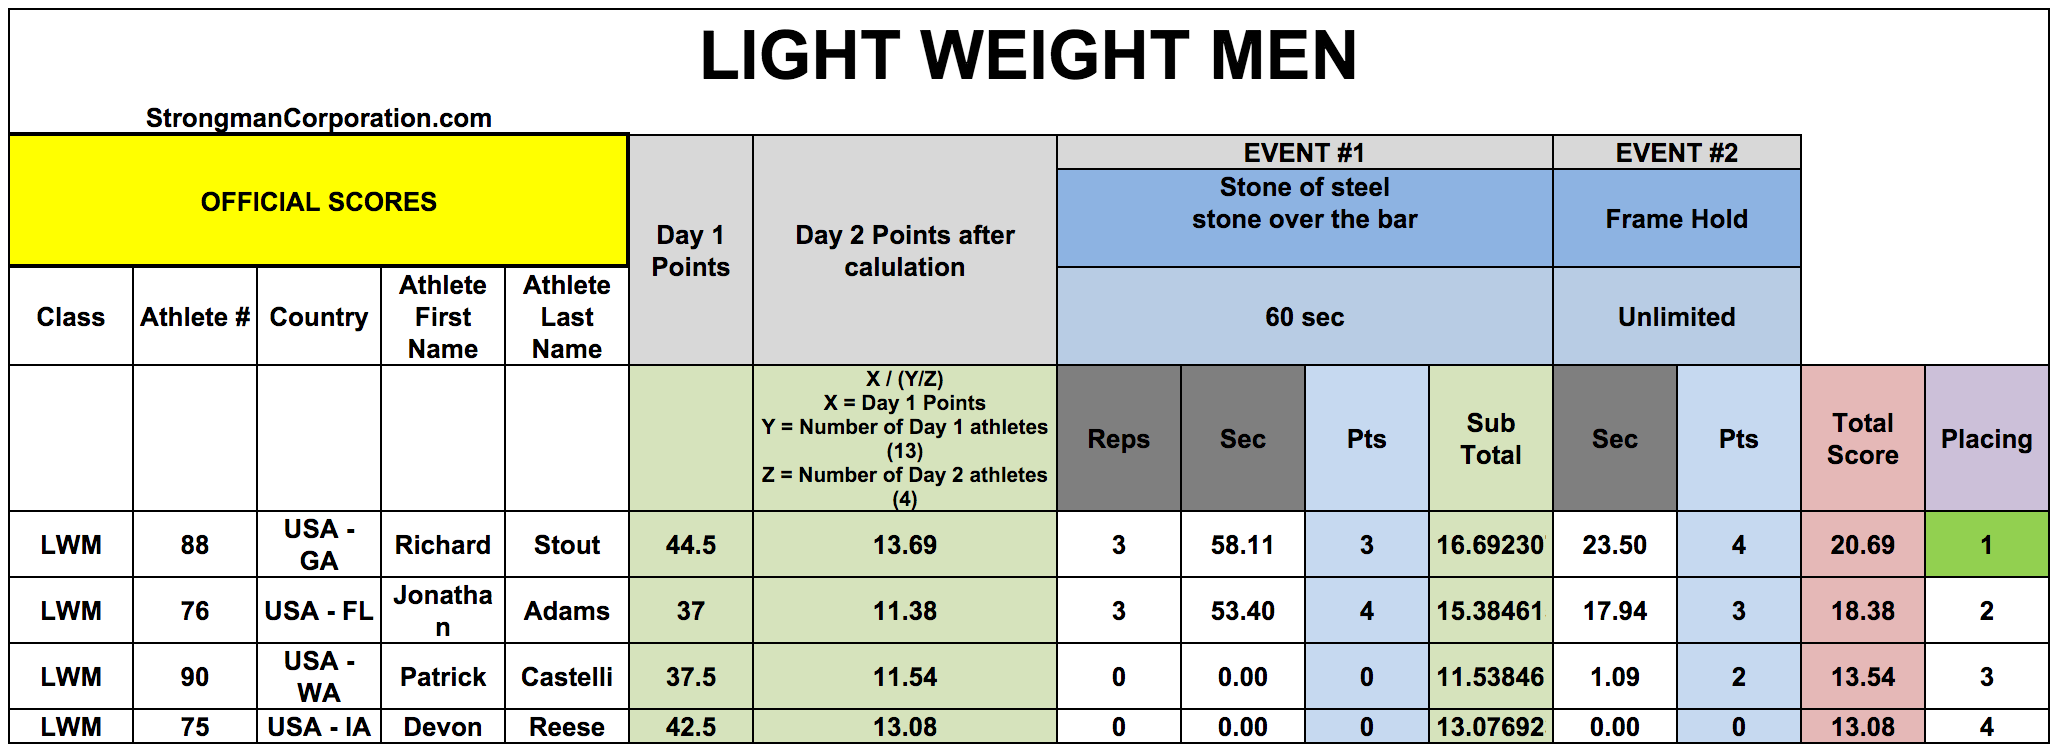 Lightweight Men